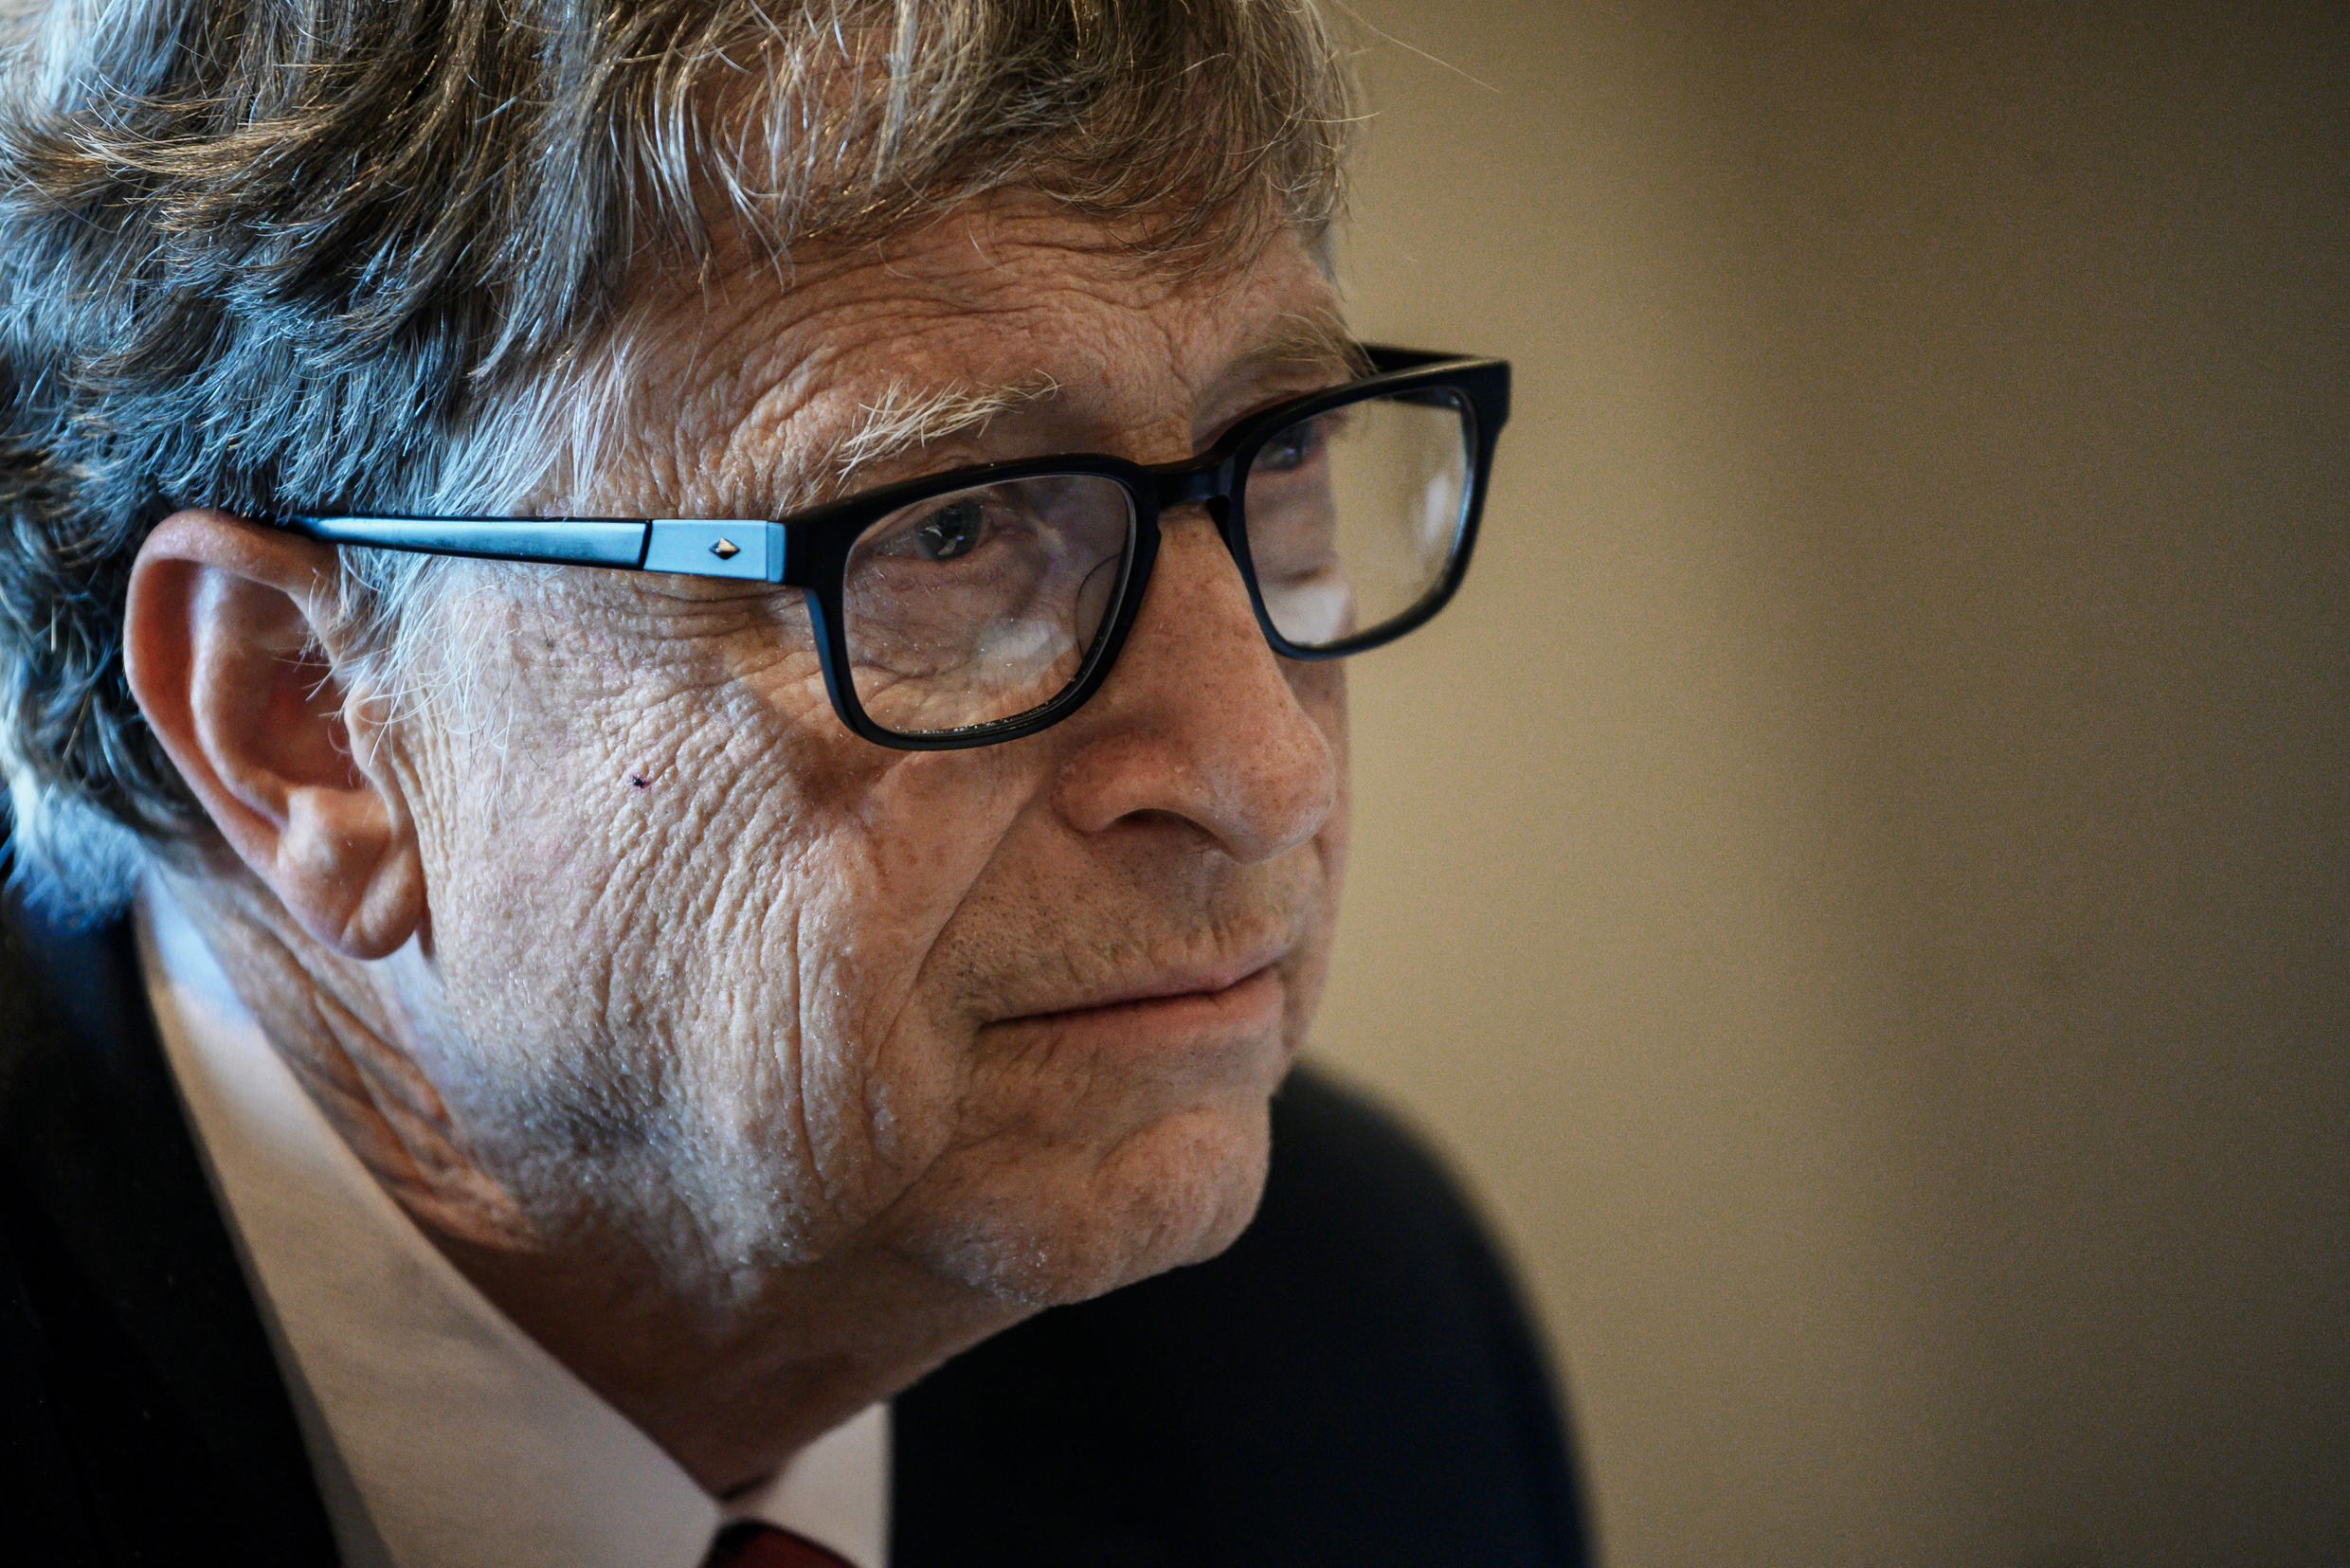 Bill Gates, founder of Microsoft and co-president of the Bill and Melinda Gates foundation, which hopes to finance cheap Covid-19 vaccines for emerging economies.